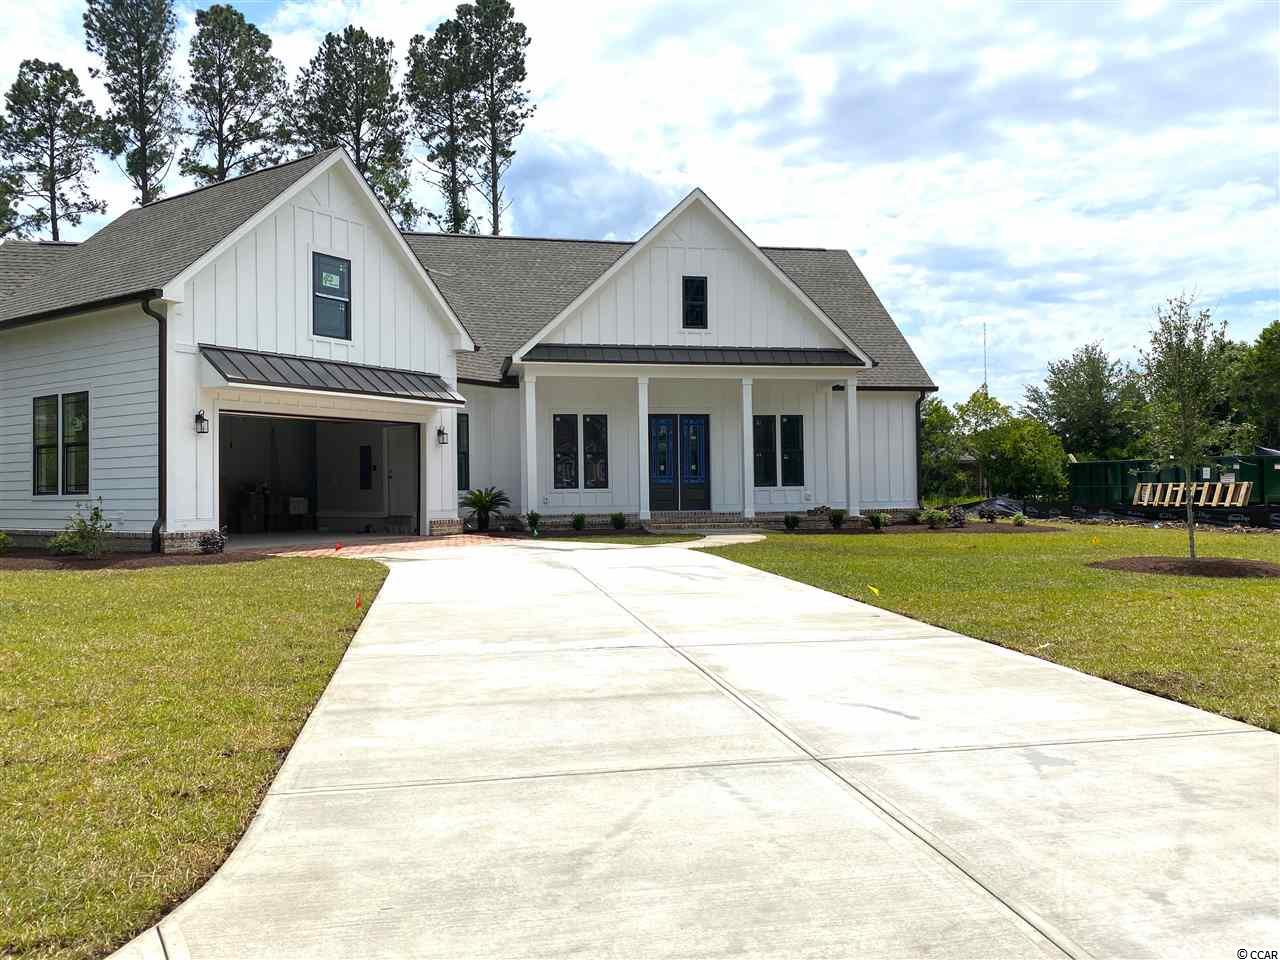 3988 Lark Hill Dr., Myrtle Beach, South Carolina